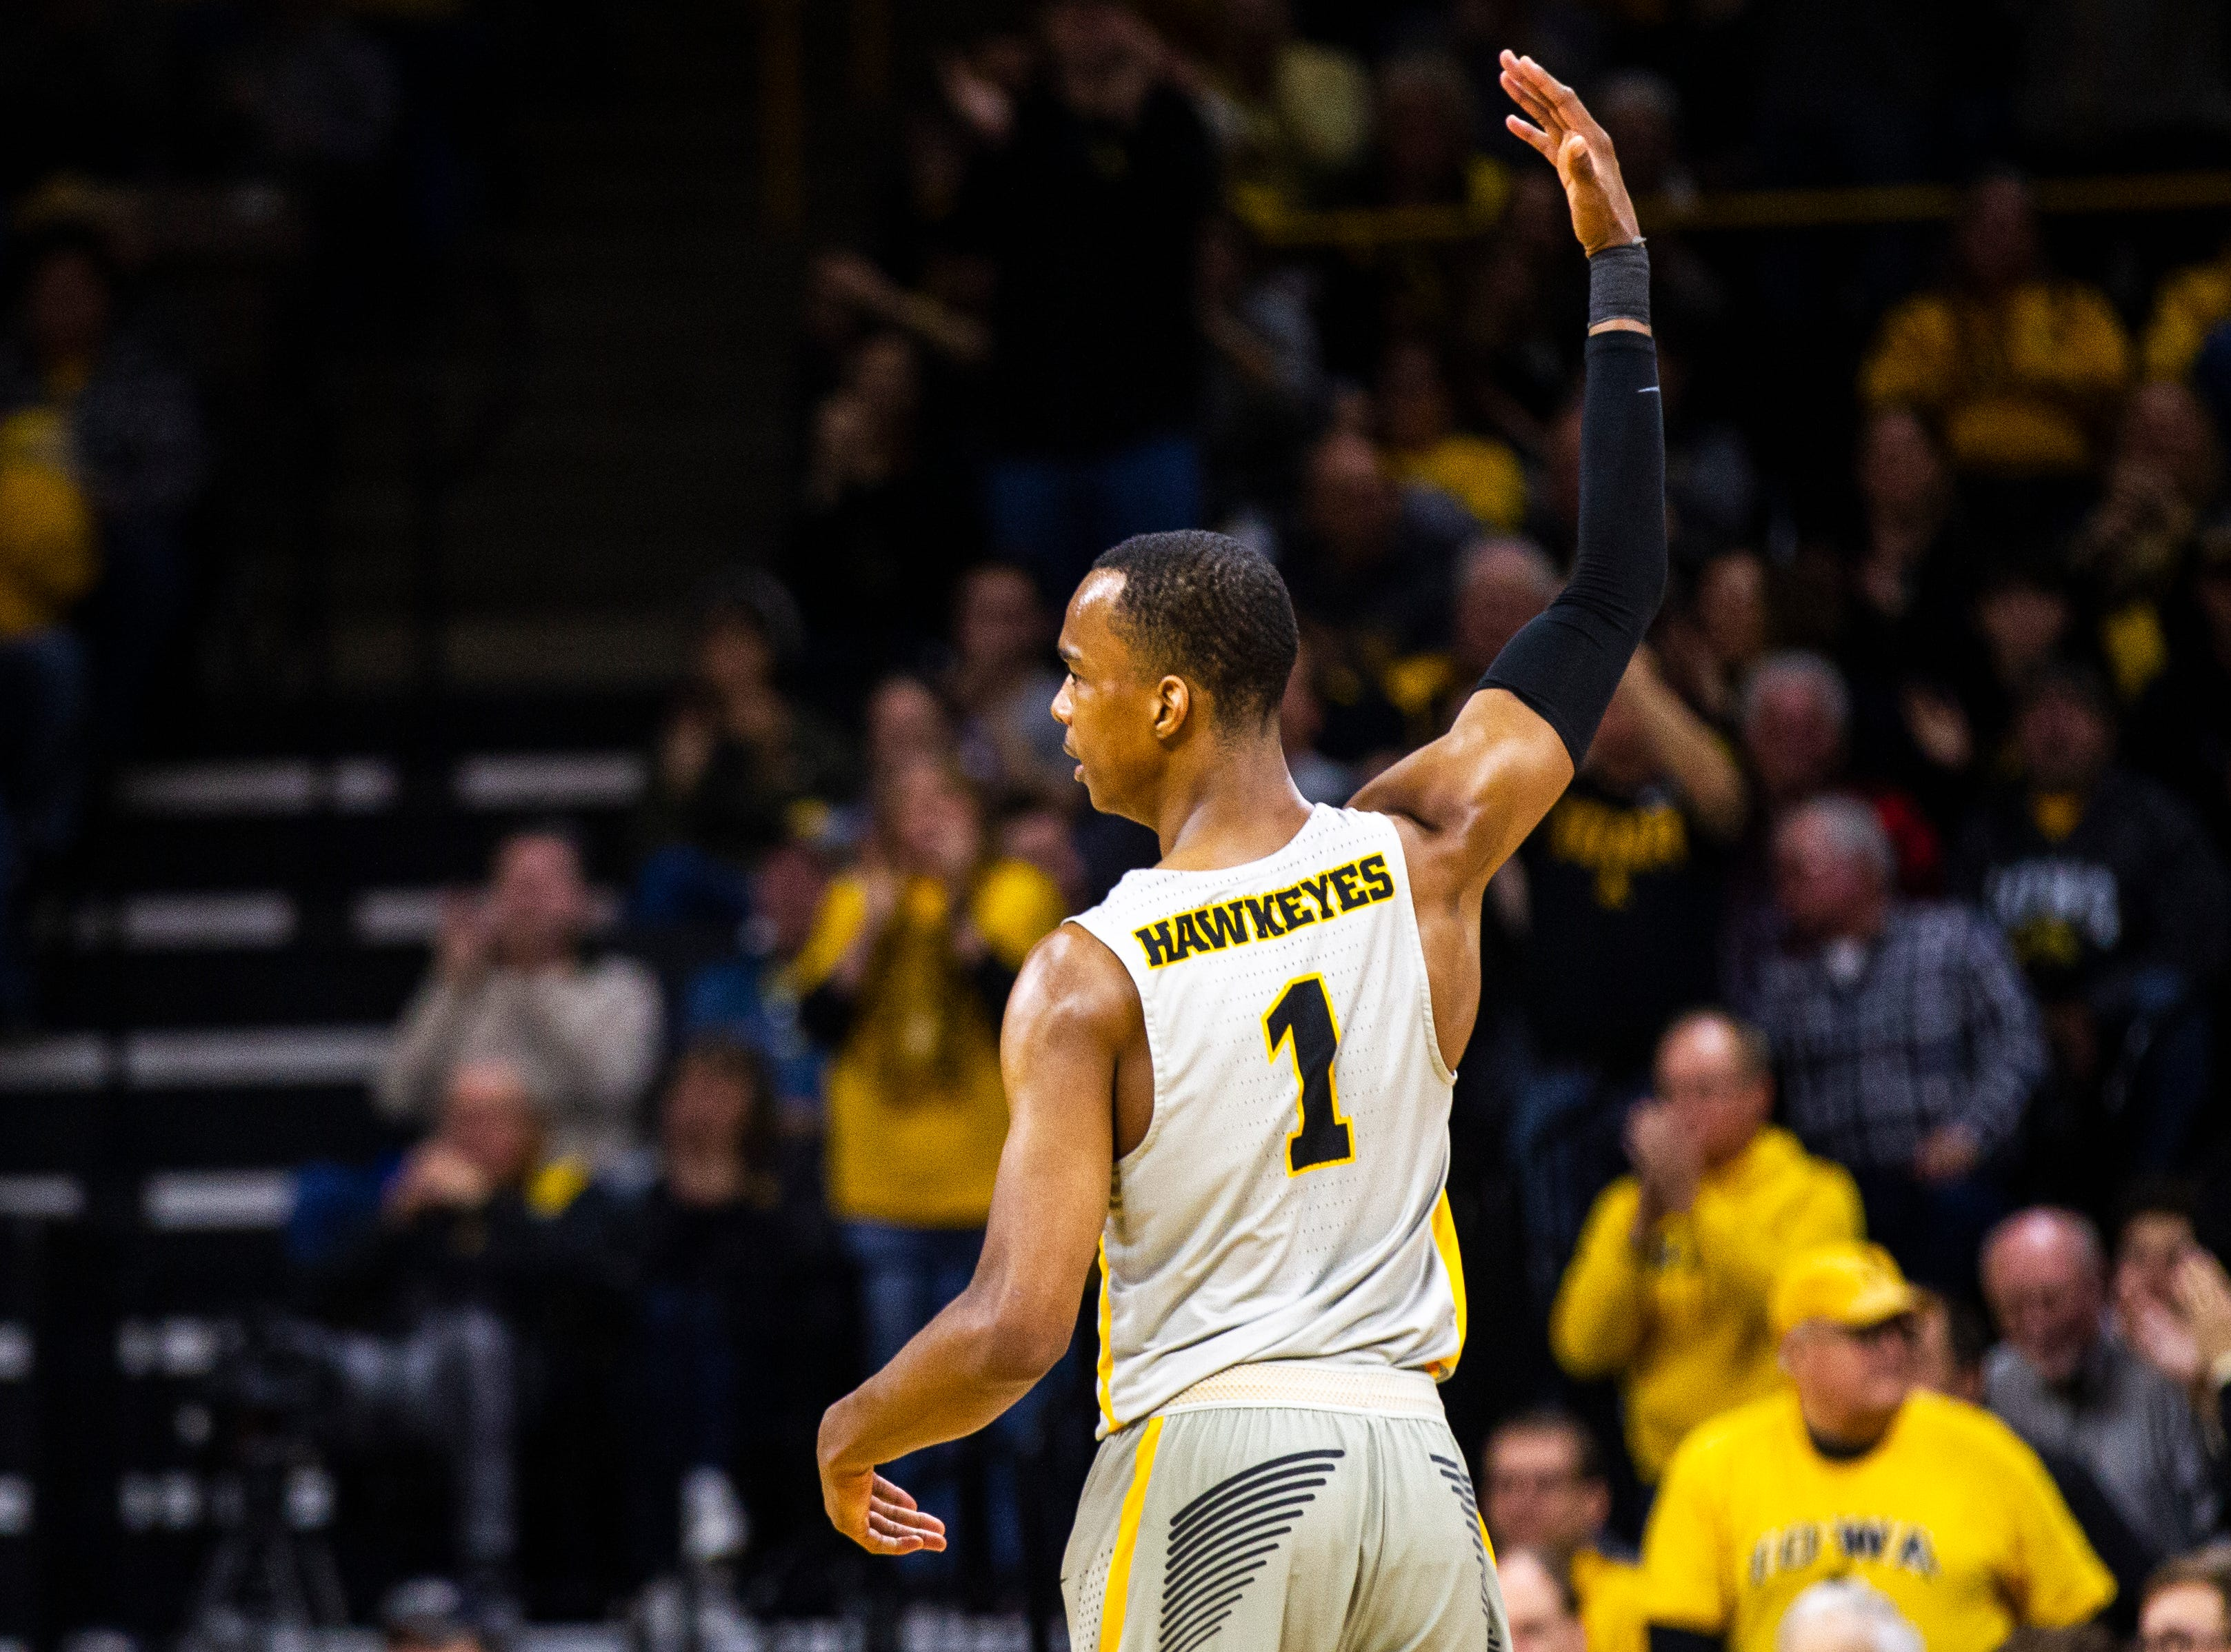 Iowa guard Maishe Dailey (1) pumps the crowd up after making a basket during a NCAA Big Ten Conference men's basketball game on Sunday, Jan. 6, 2019, at the Carver-Hawkeye Arena in Iowa City, Iowa.